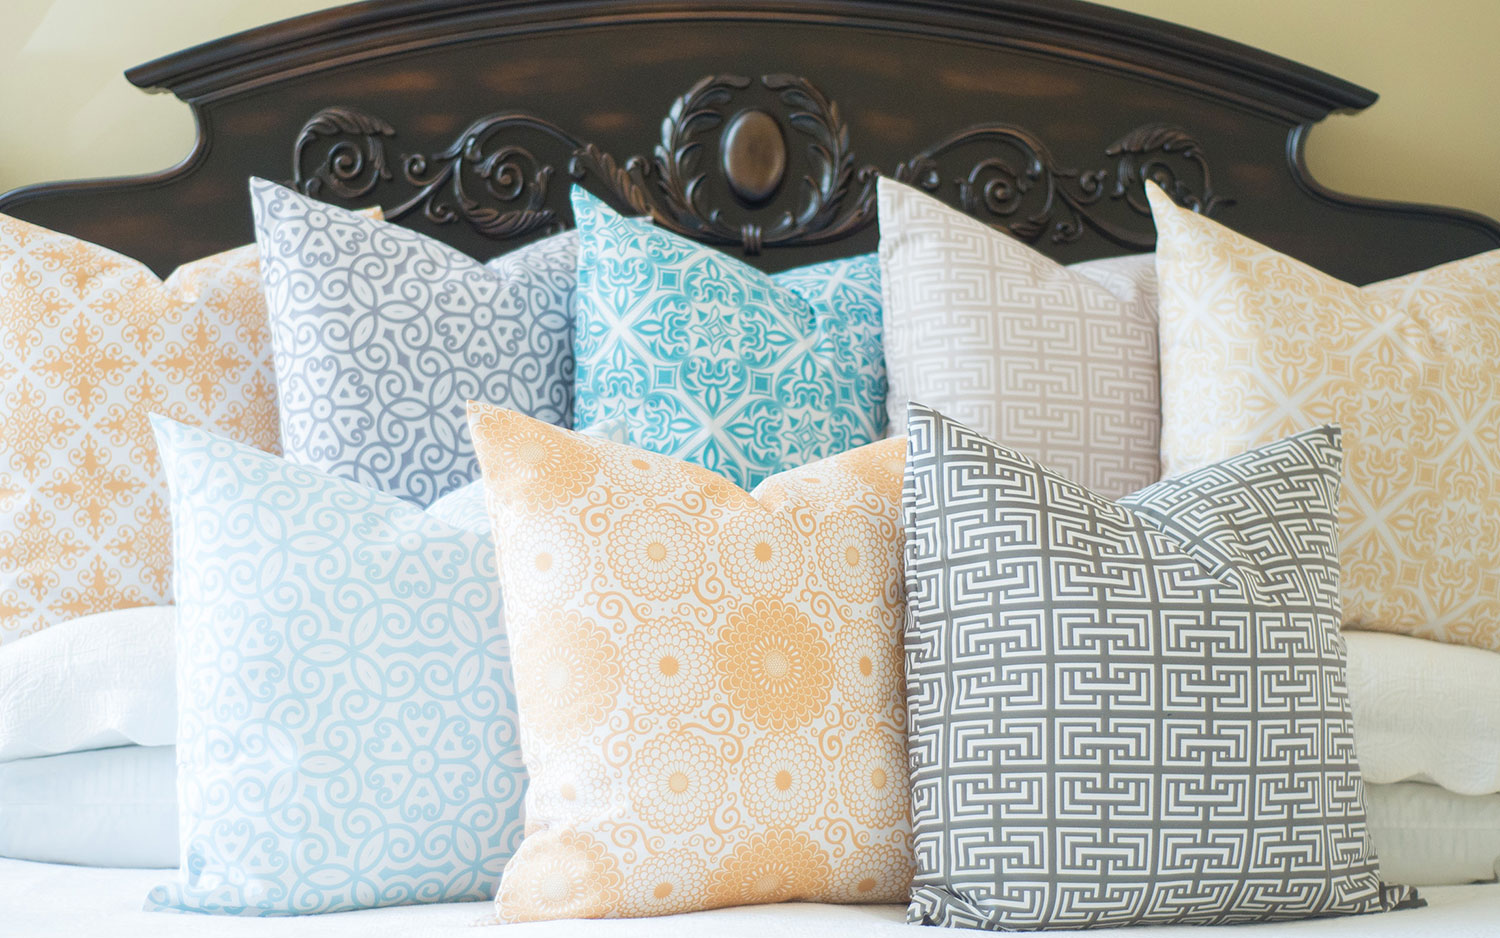 SOUTHERN SISTERS Pillows-1